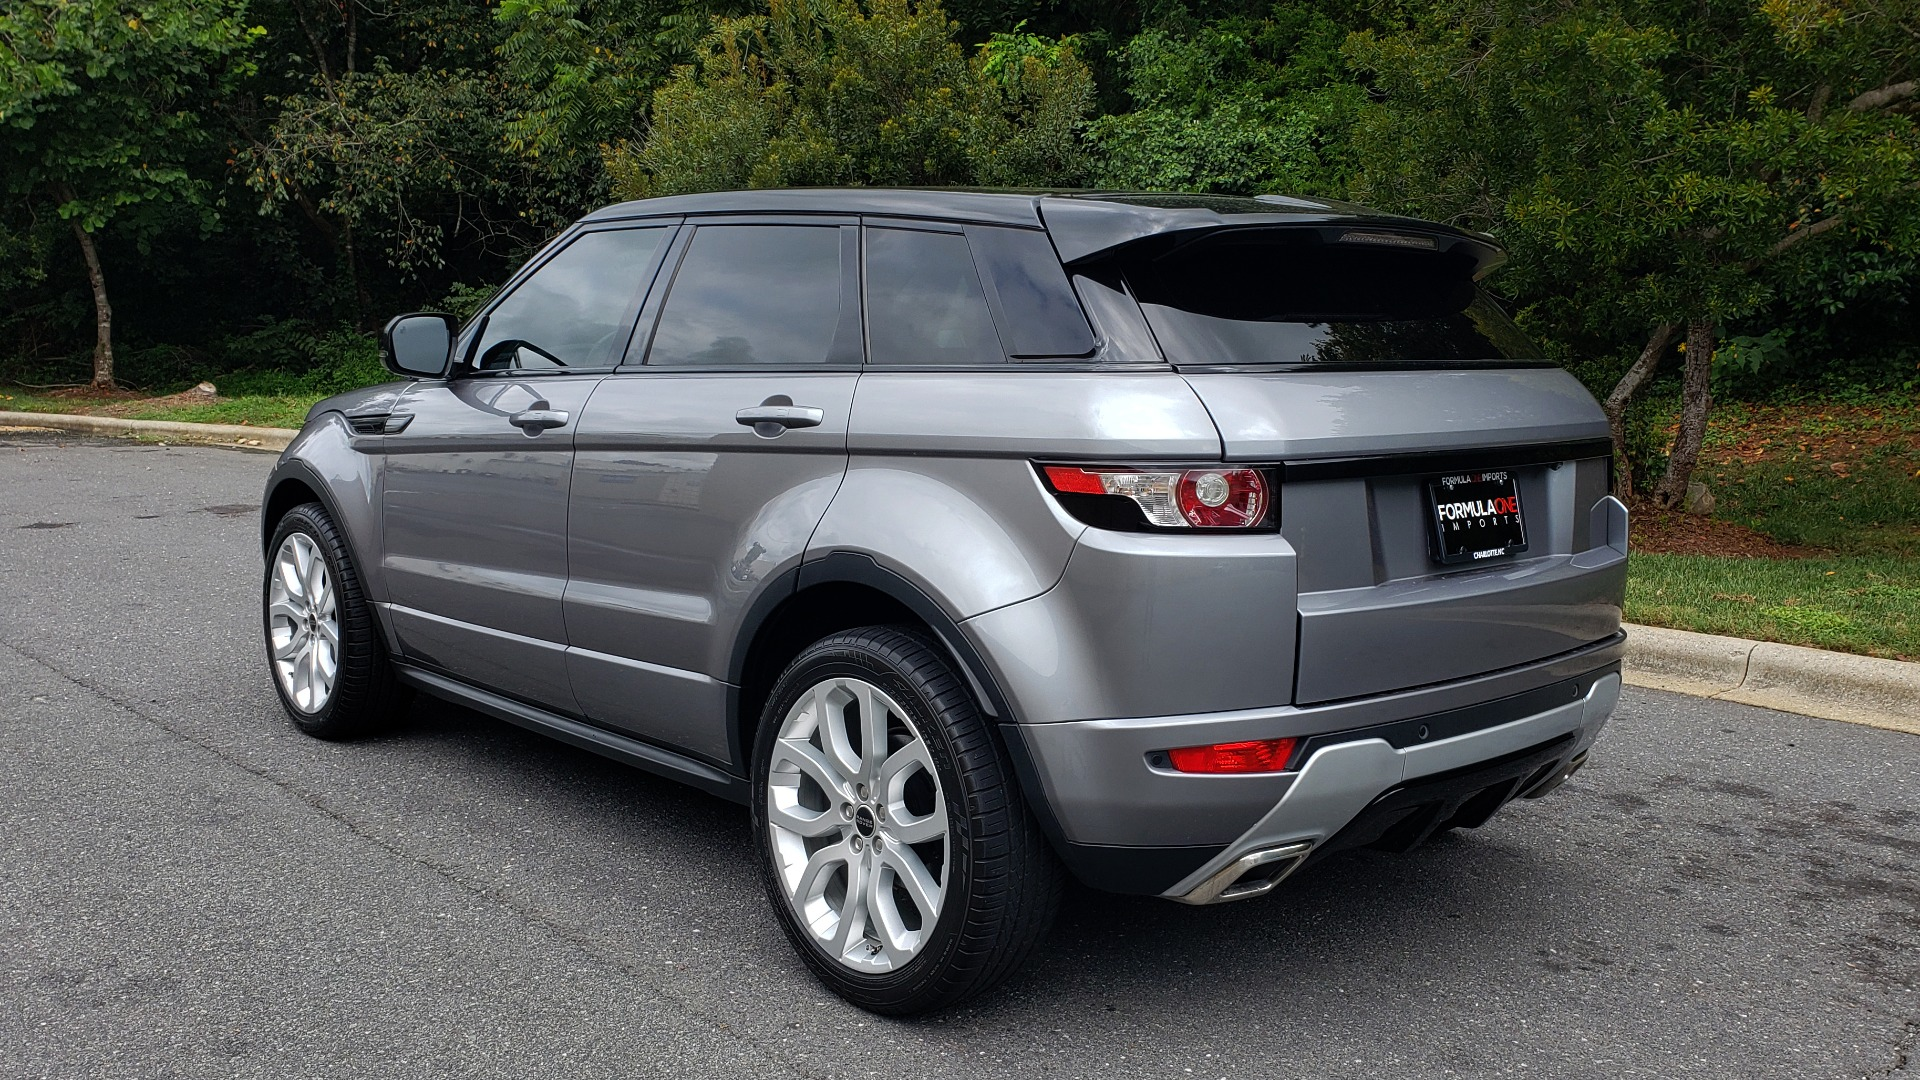 Used 2013 Land Rover RANGE ROVER EVOQUE DYNAMIC PREMIUM / NAV / PANO-ROOF / BLIND SPOT / REARVIEW for sale Sold at Formula Imports in Charlotte NC 28227 4